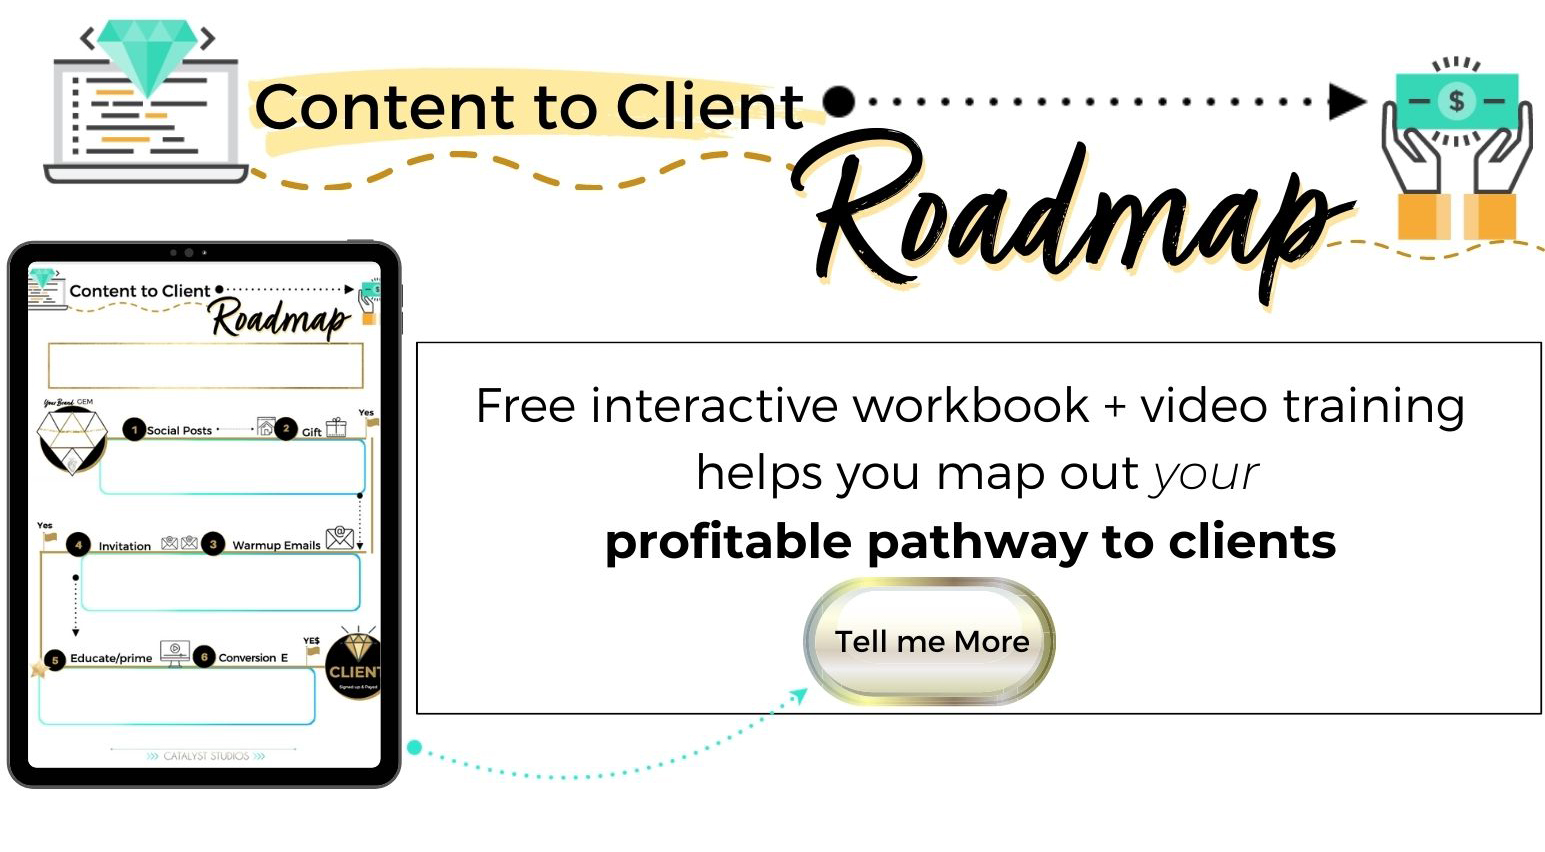 Content to Client Roadmap- content marketing freebie by Audette- Catalyst Studios